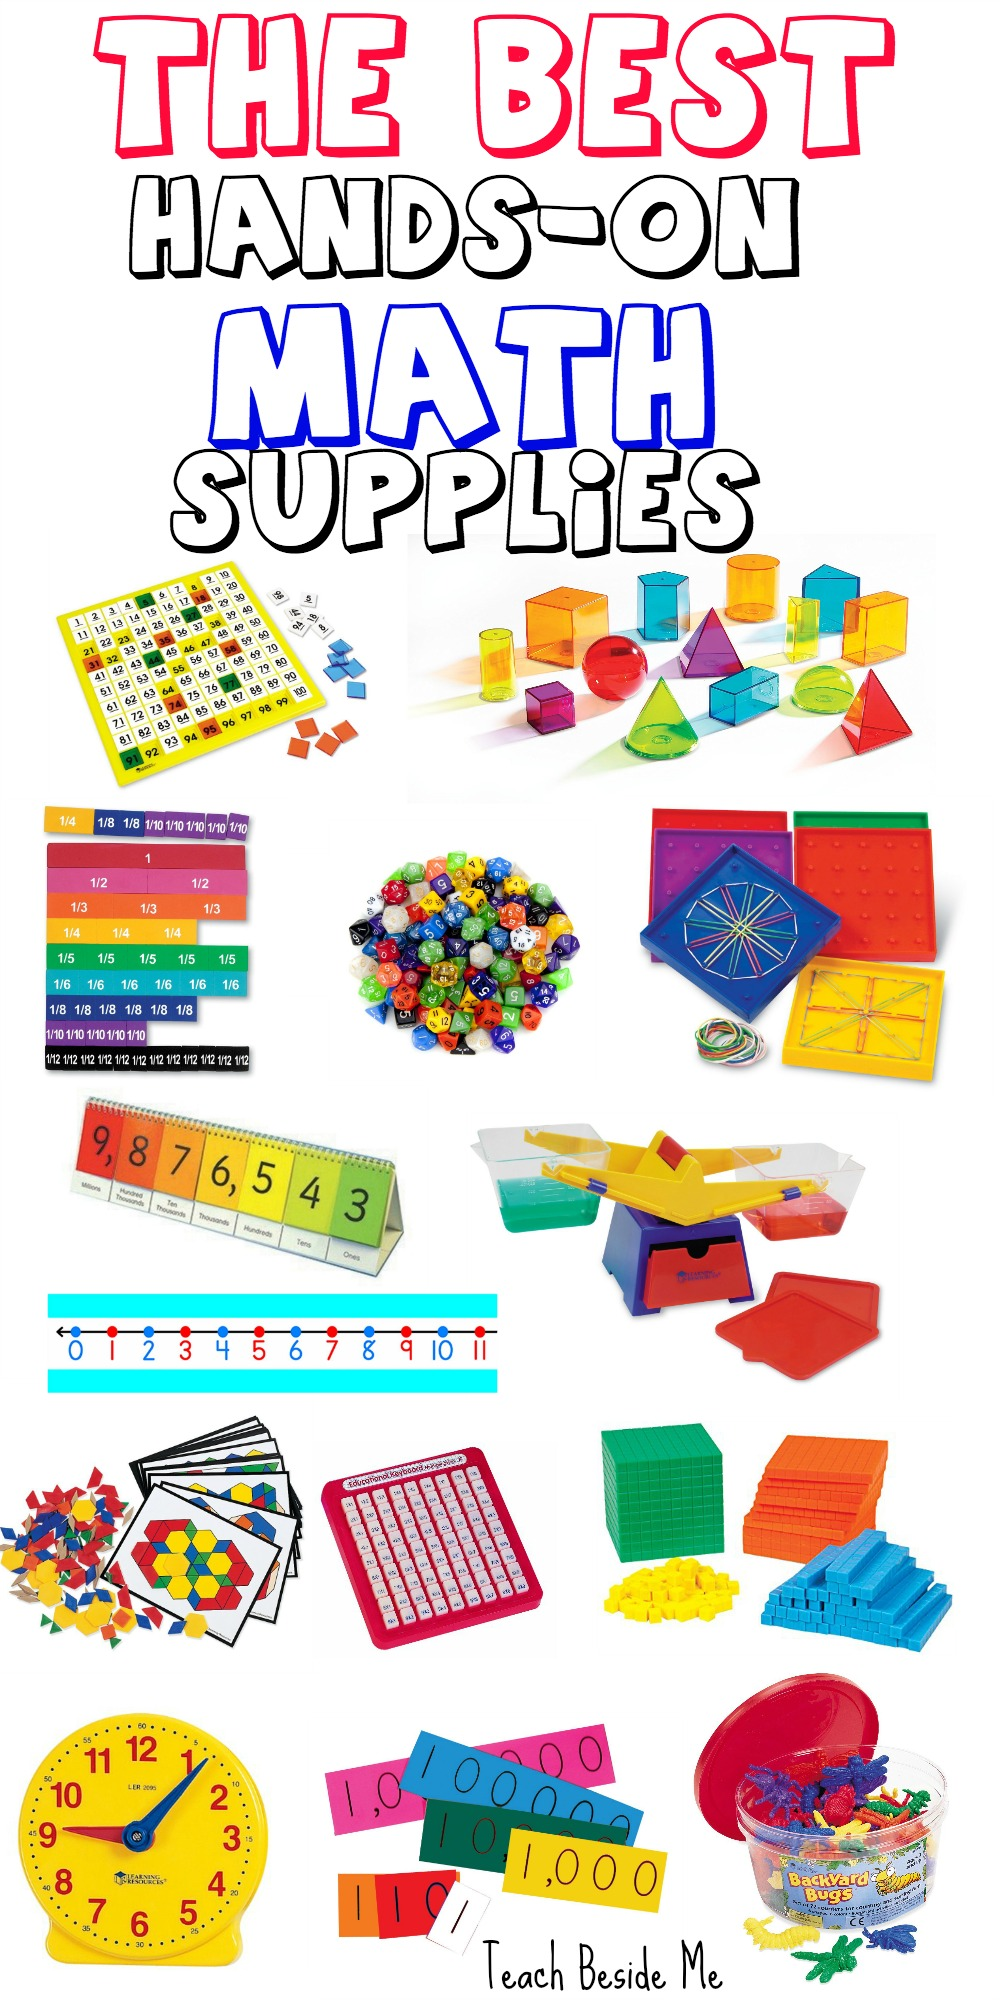 The BEST Hands-On Math Supplies for Kids